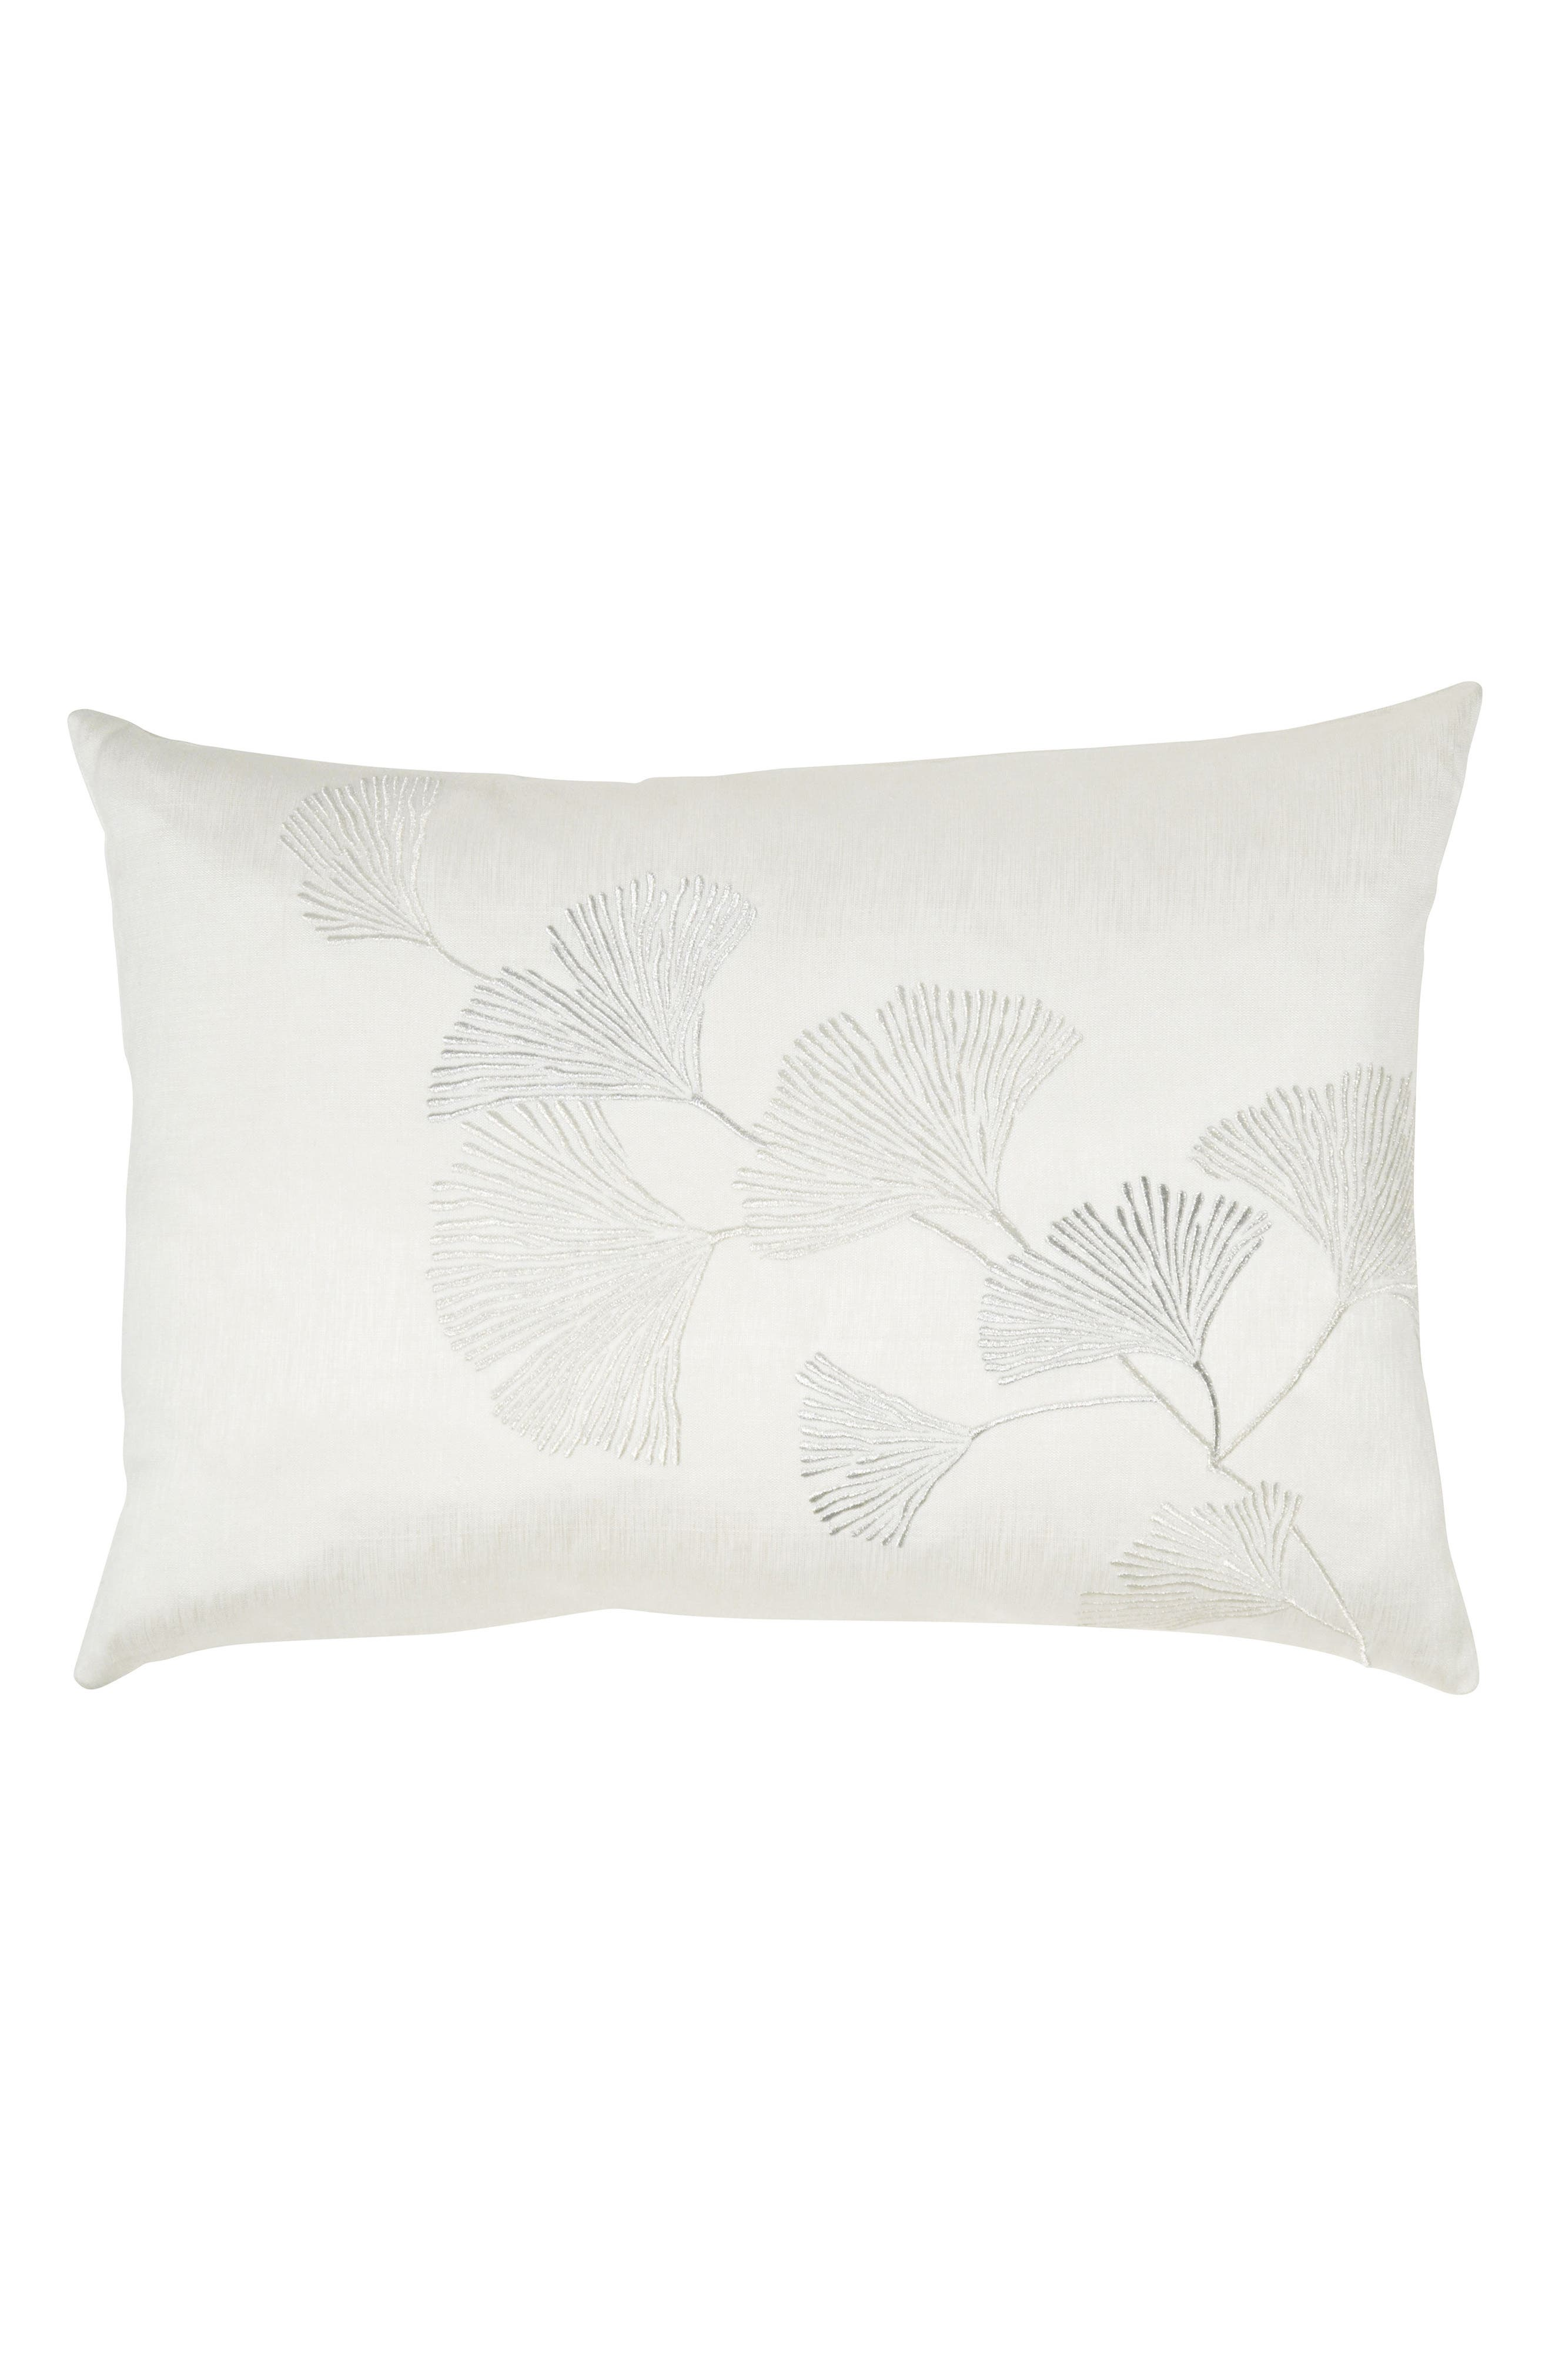 Ginkgo Leaf Embroidered Accent Pillow,                             Main thumbnail 1, color,                             IVORY